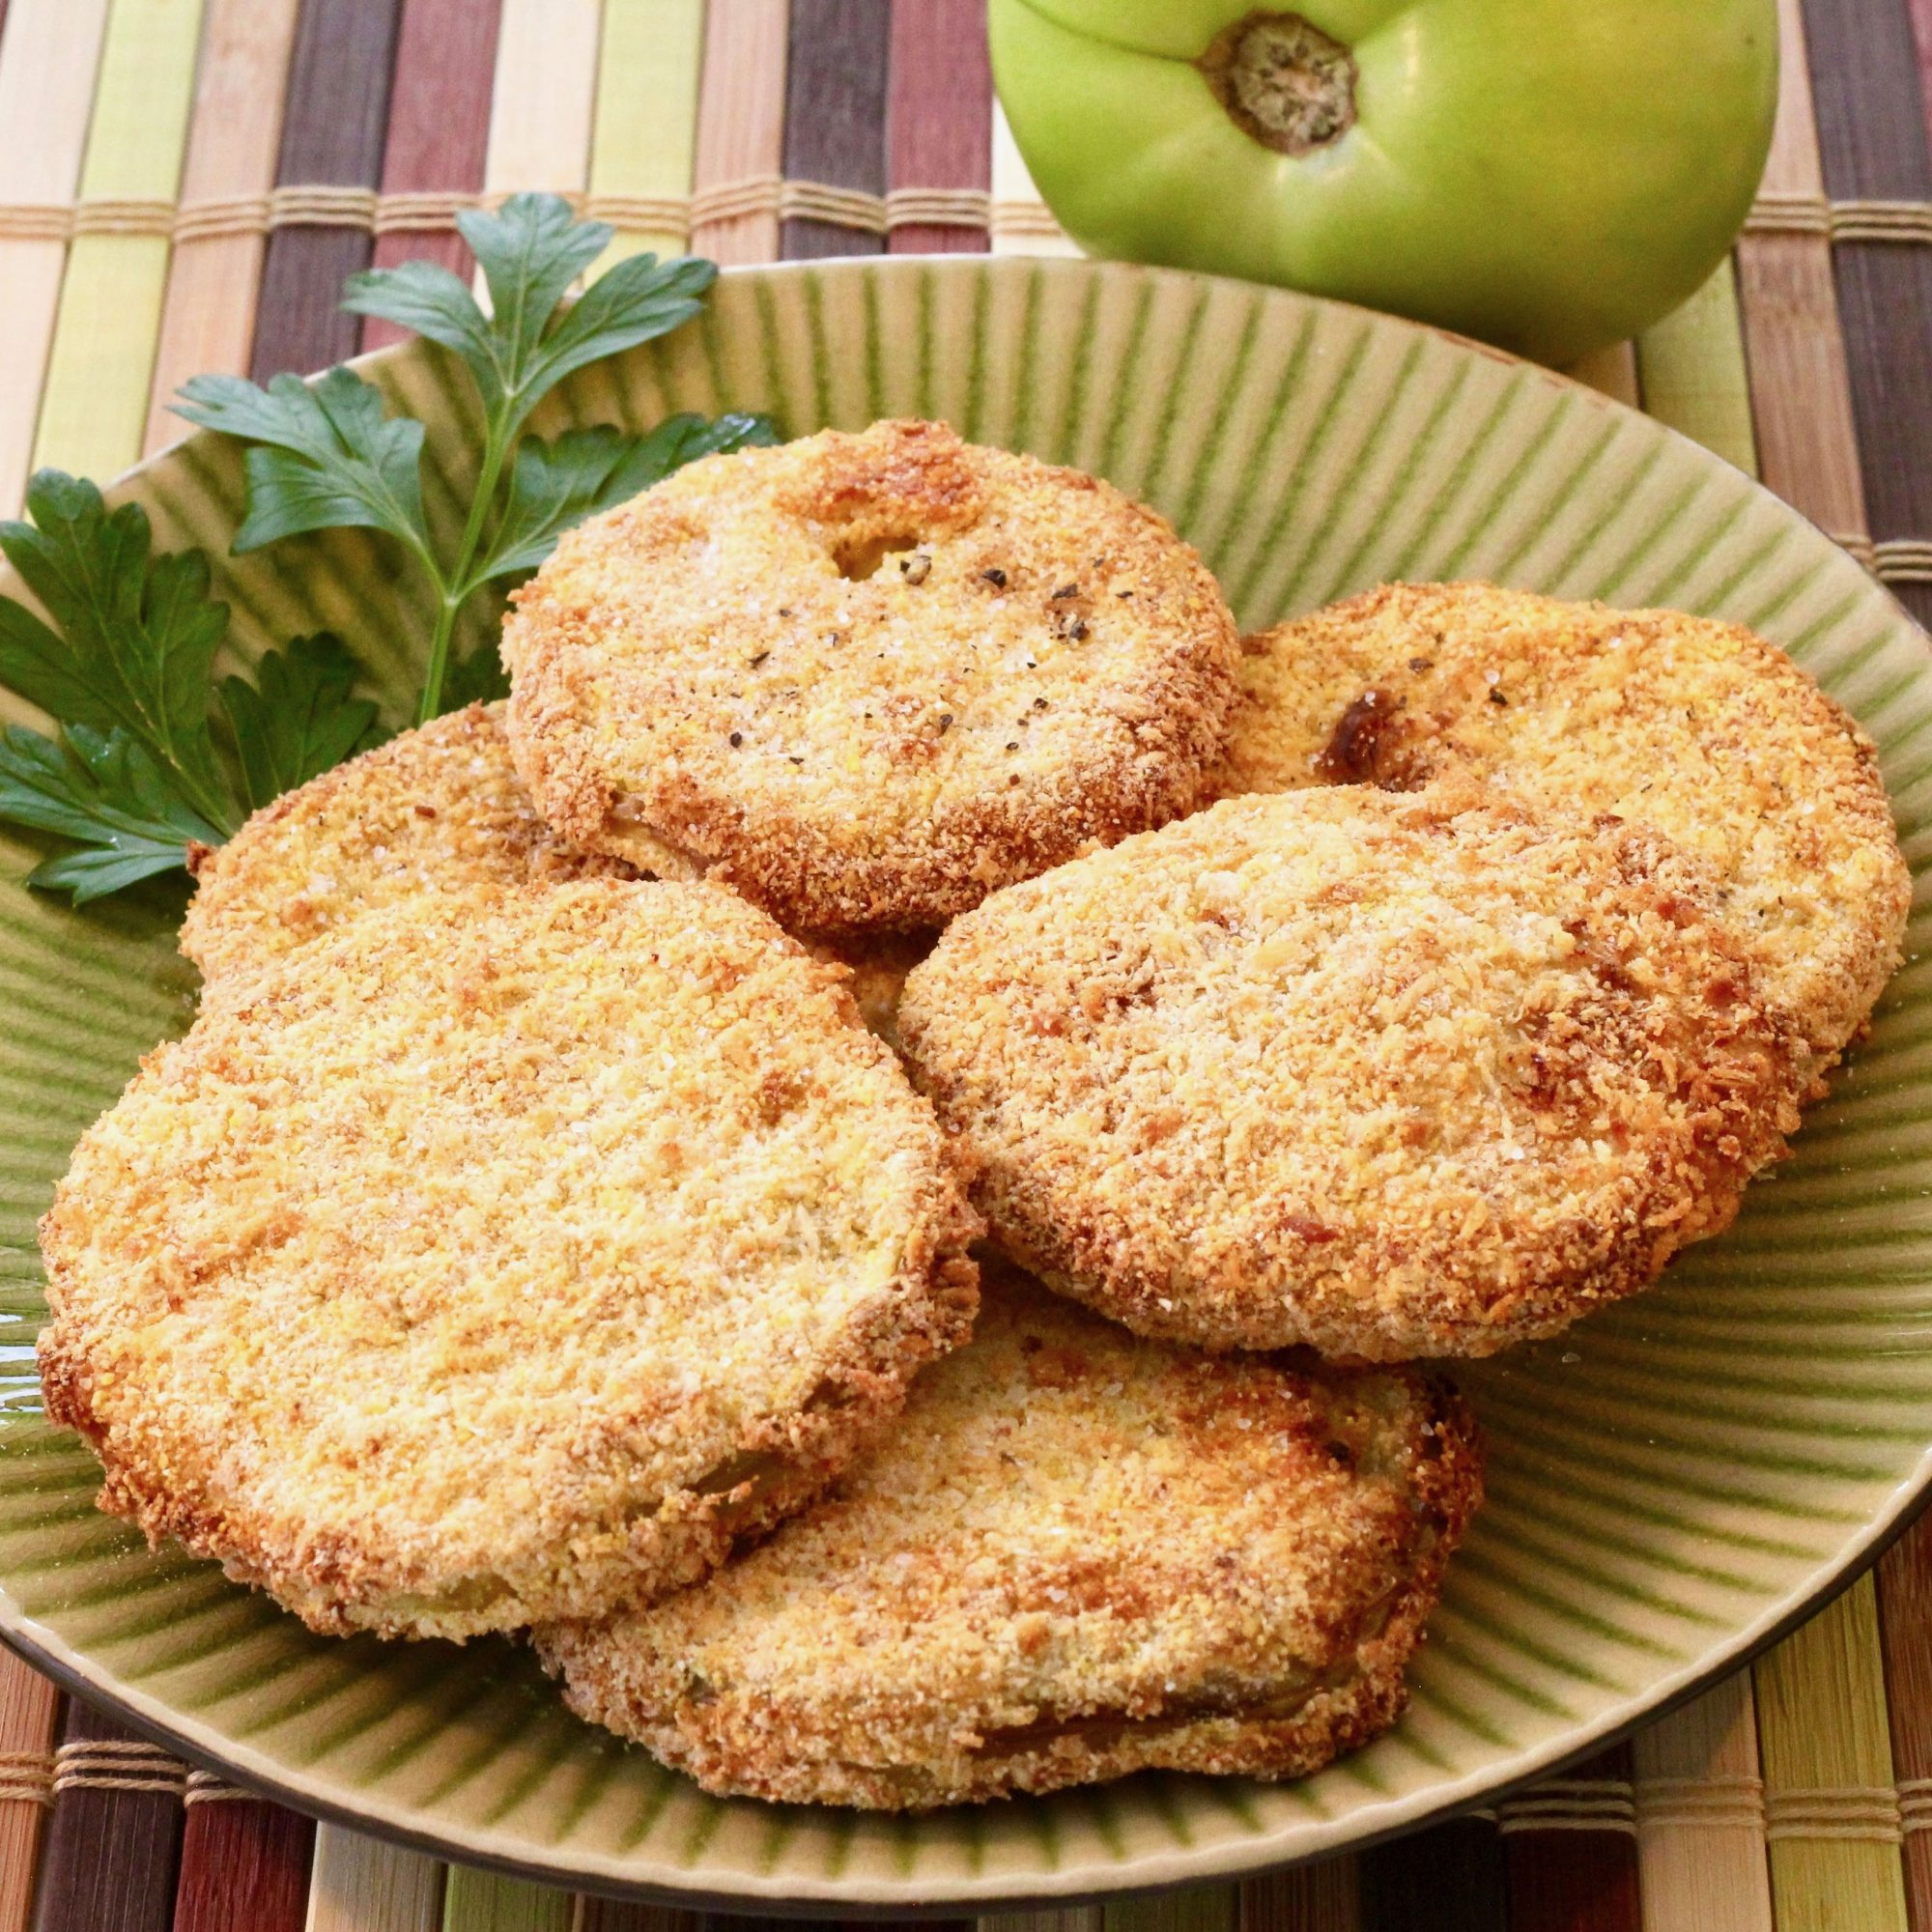 air-fried green tomatoes on a green plate